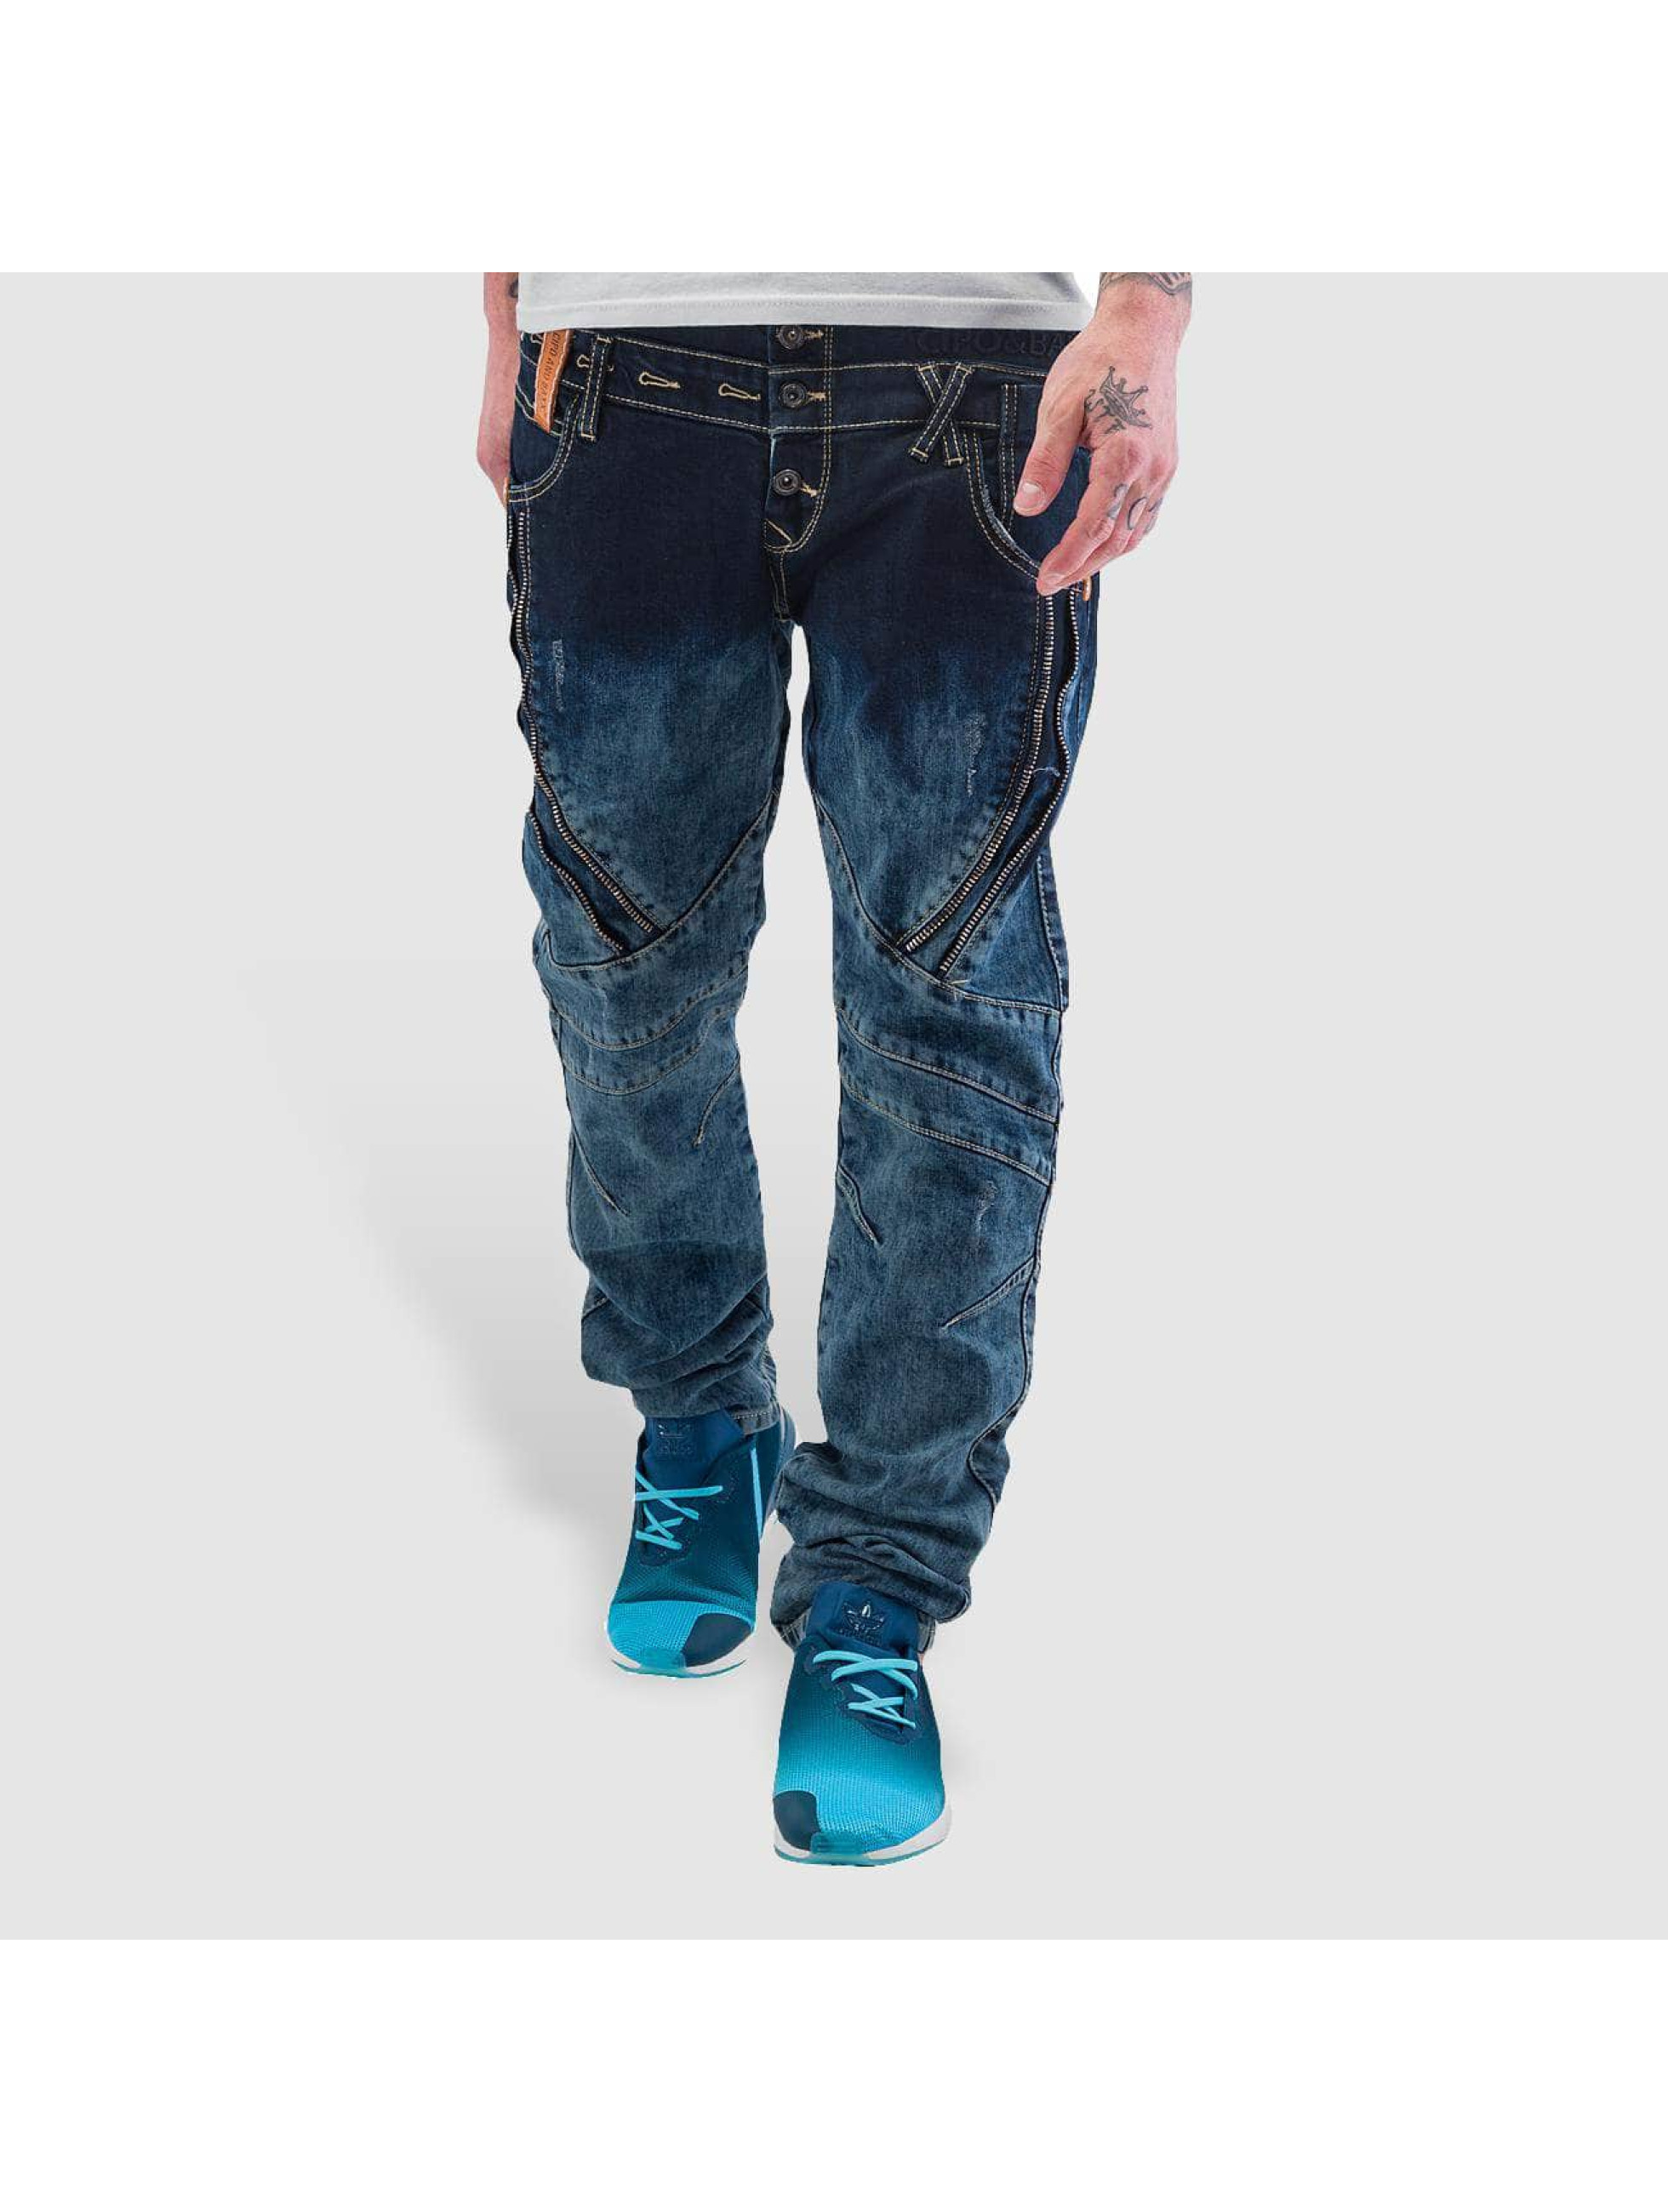 Cipo & Baxx Straight Fit Jeans Elias blau